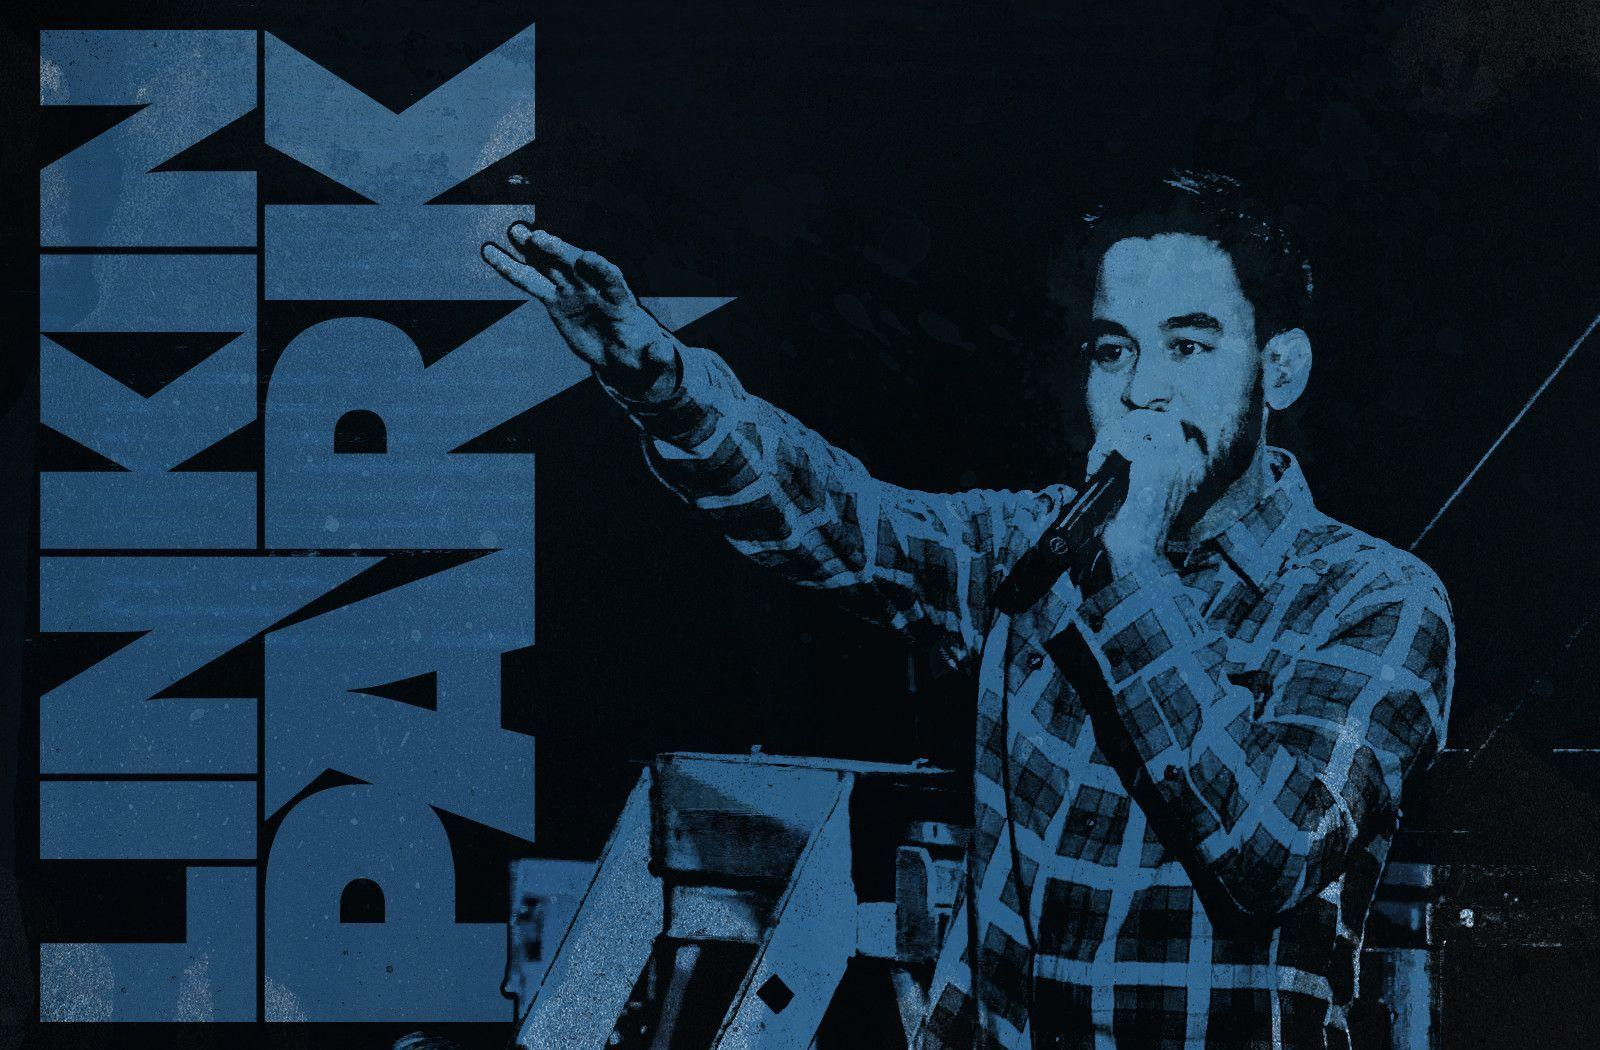 Mike Shinoda Hd Wallpapers Wallpaper Cave